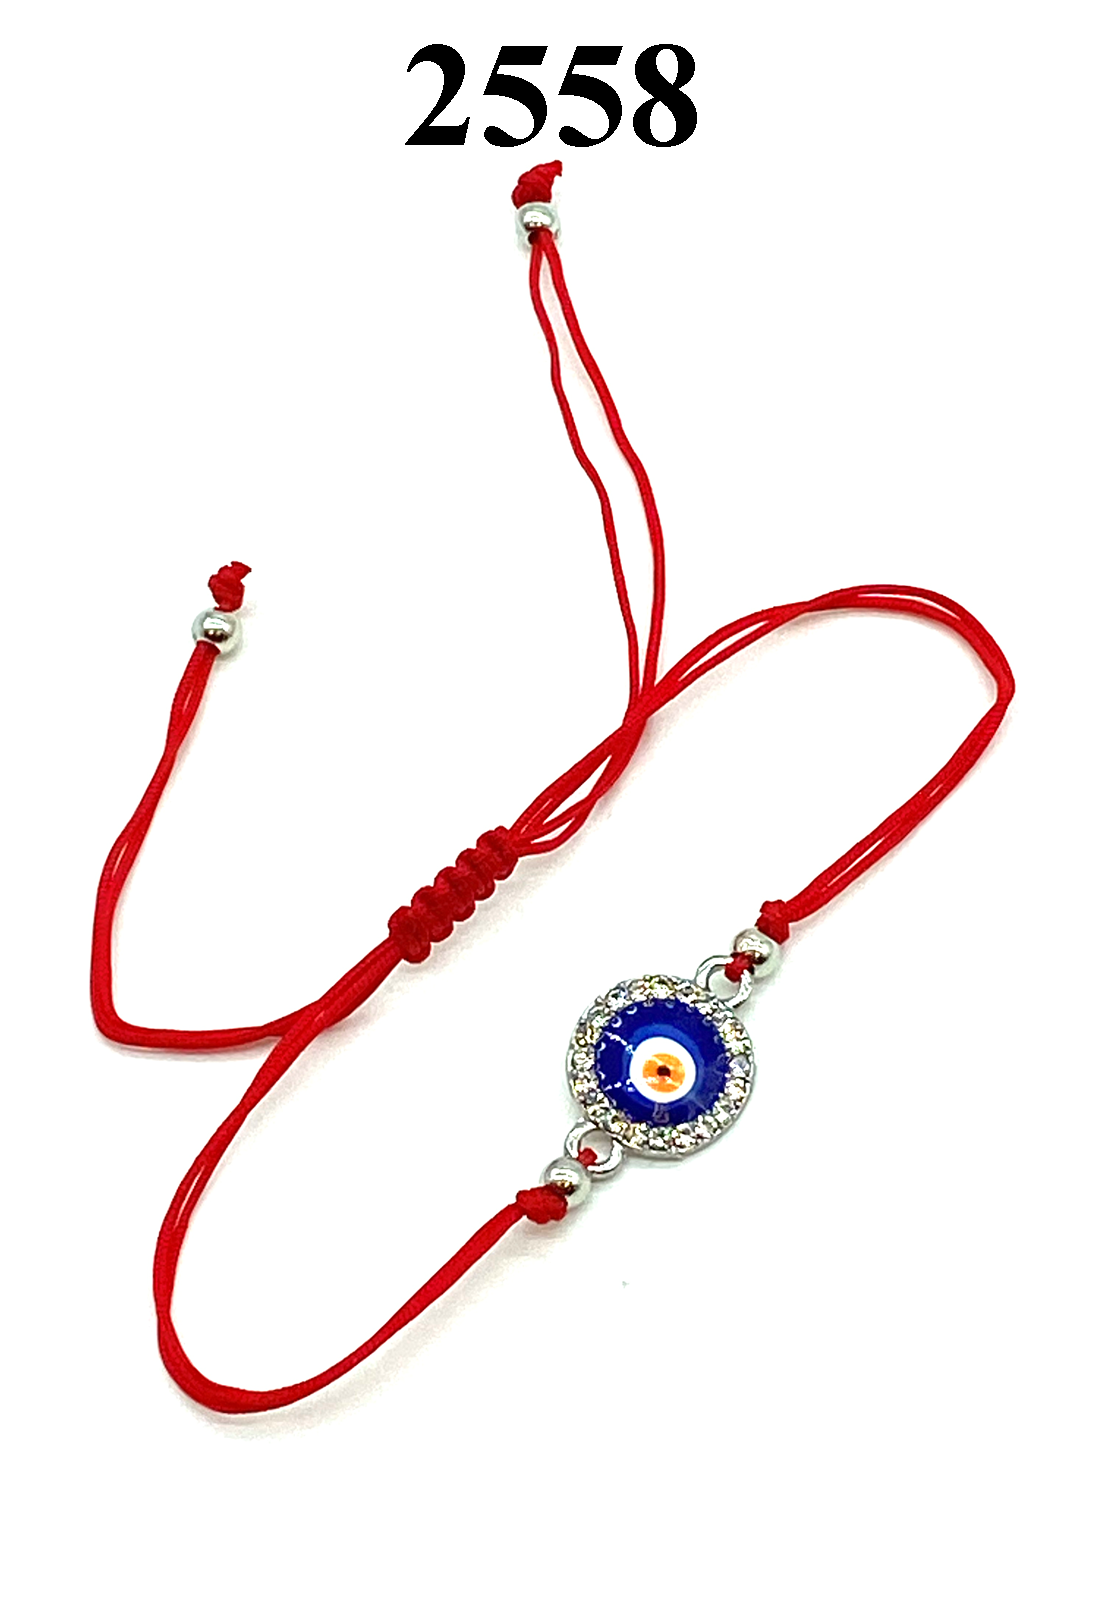 Evil Eye LuckyEye Round Crystal on Red Rope Bracelet #2558